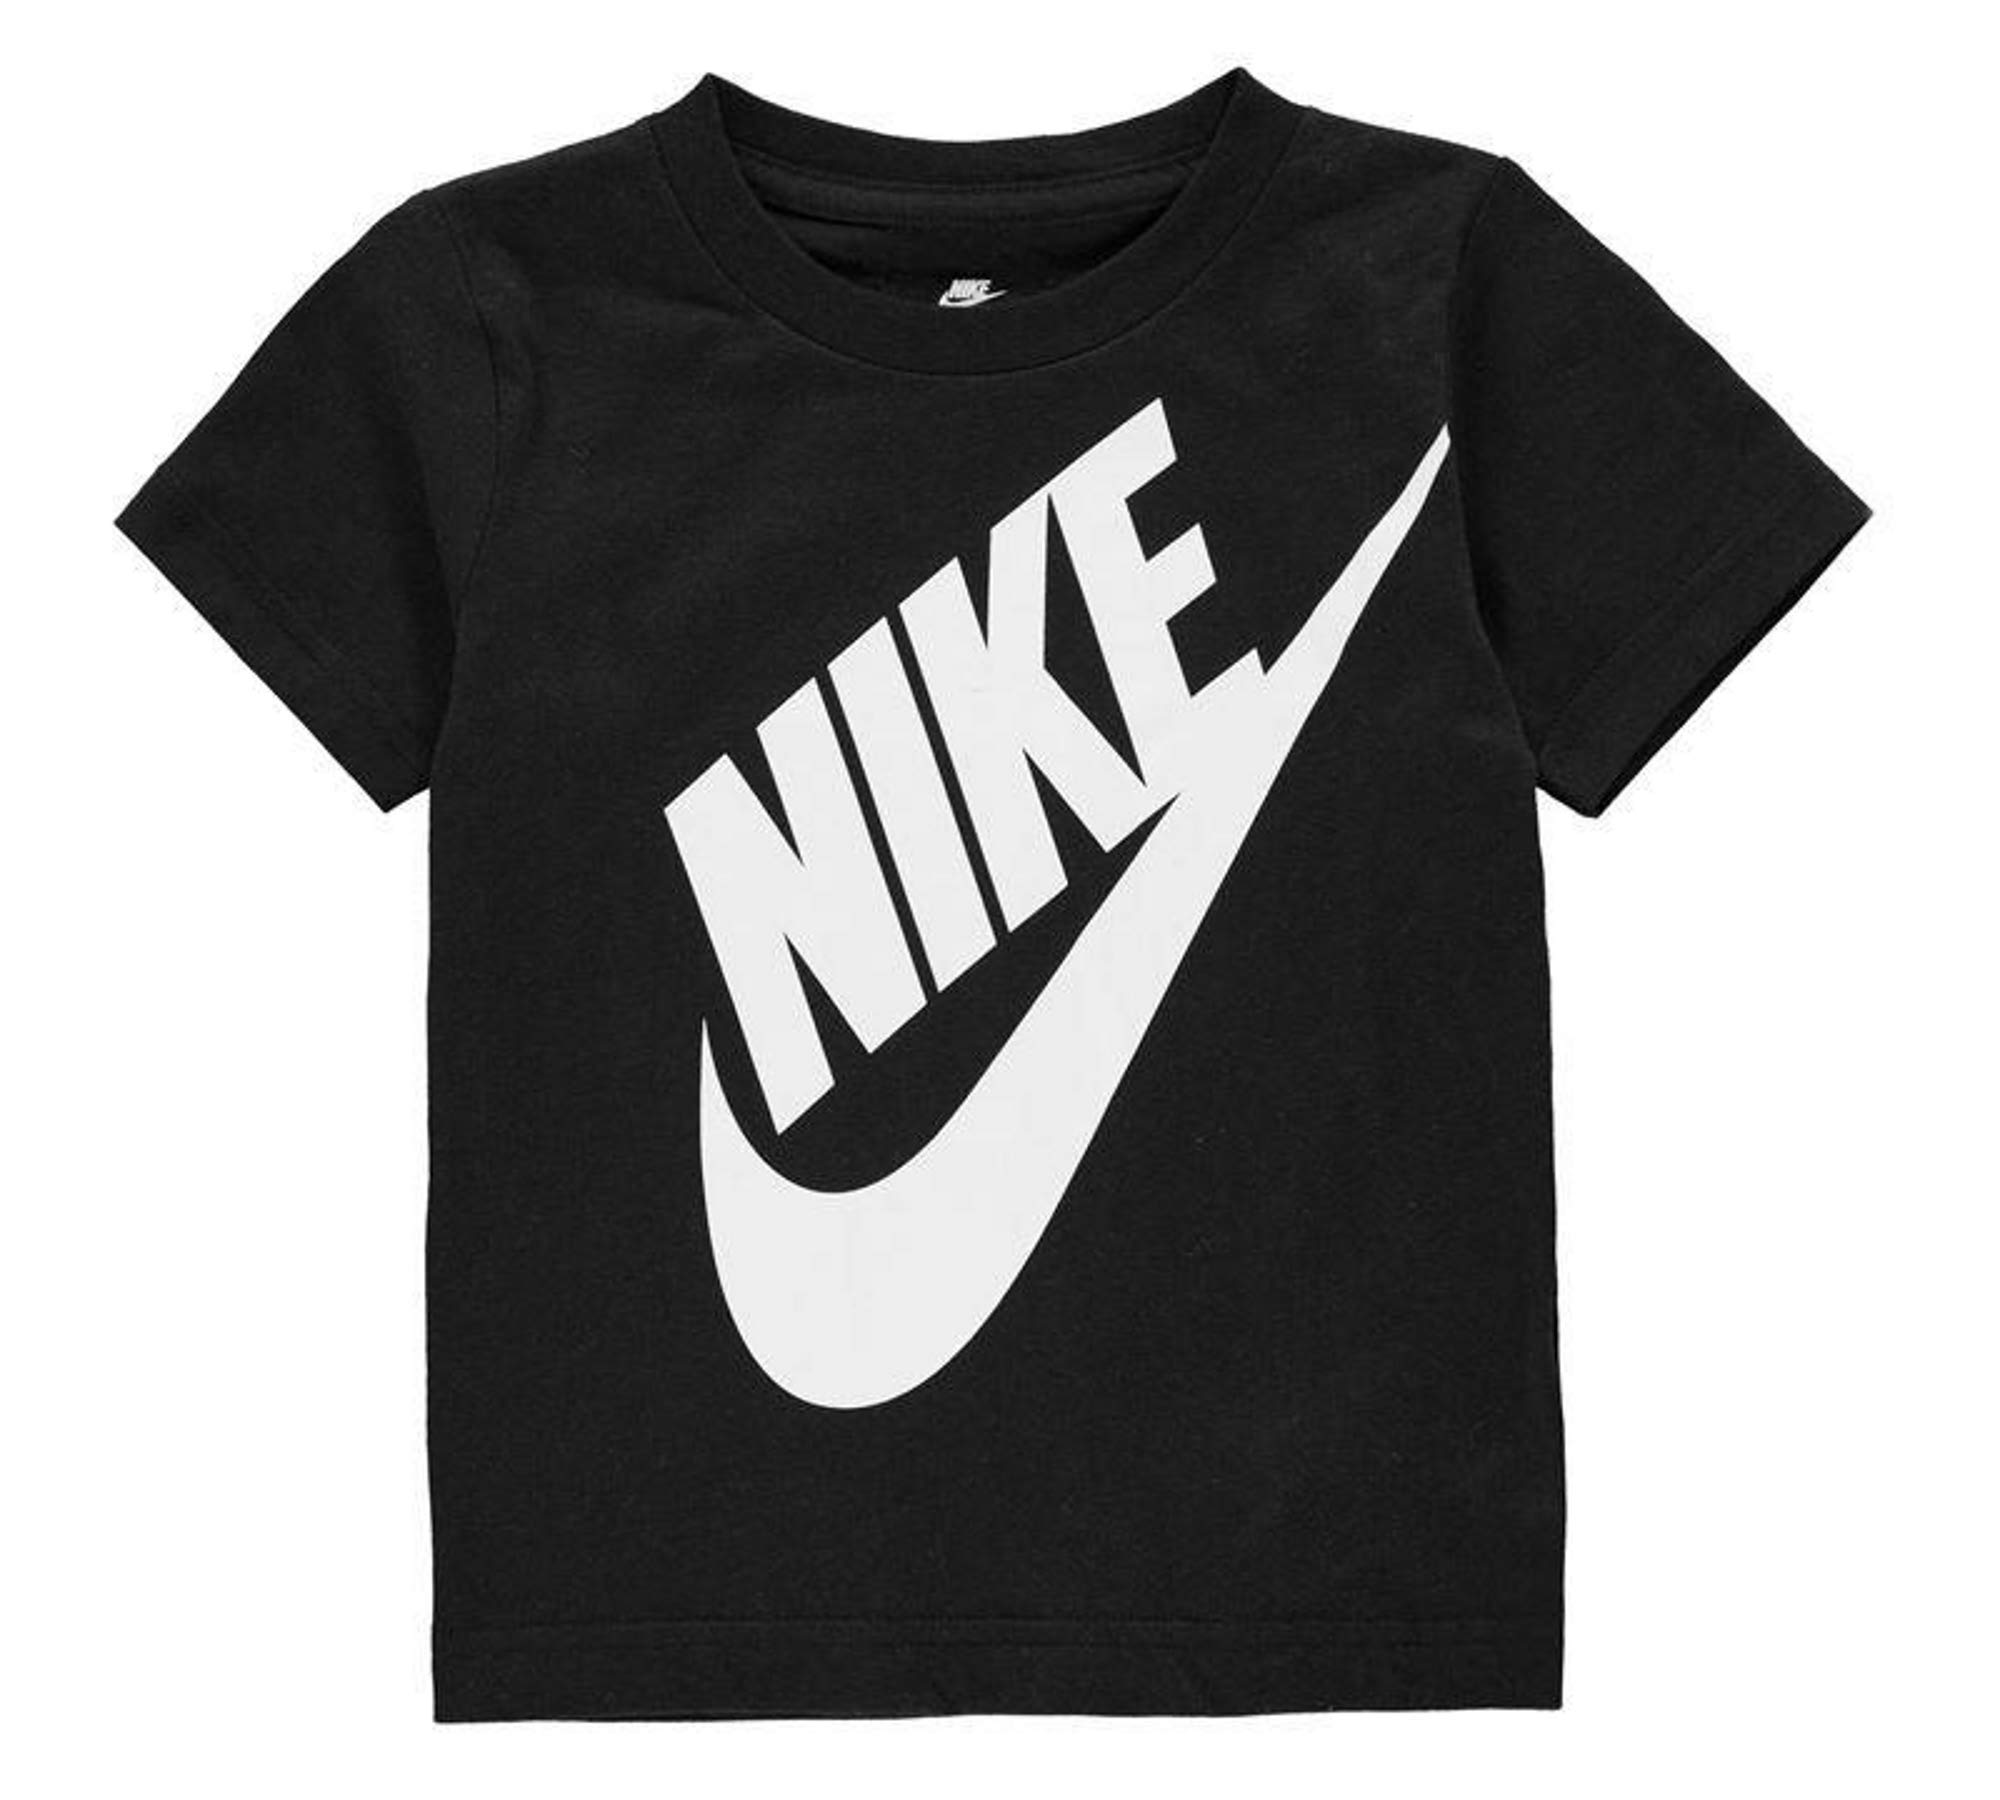 Nike Boys Toddler T-Shirt Black/White